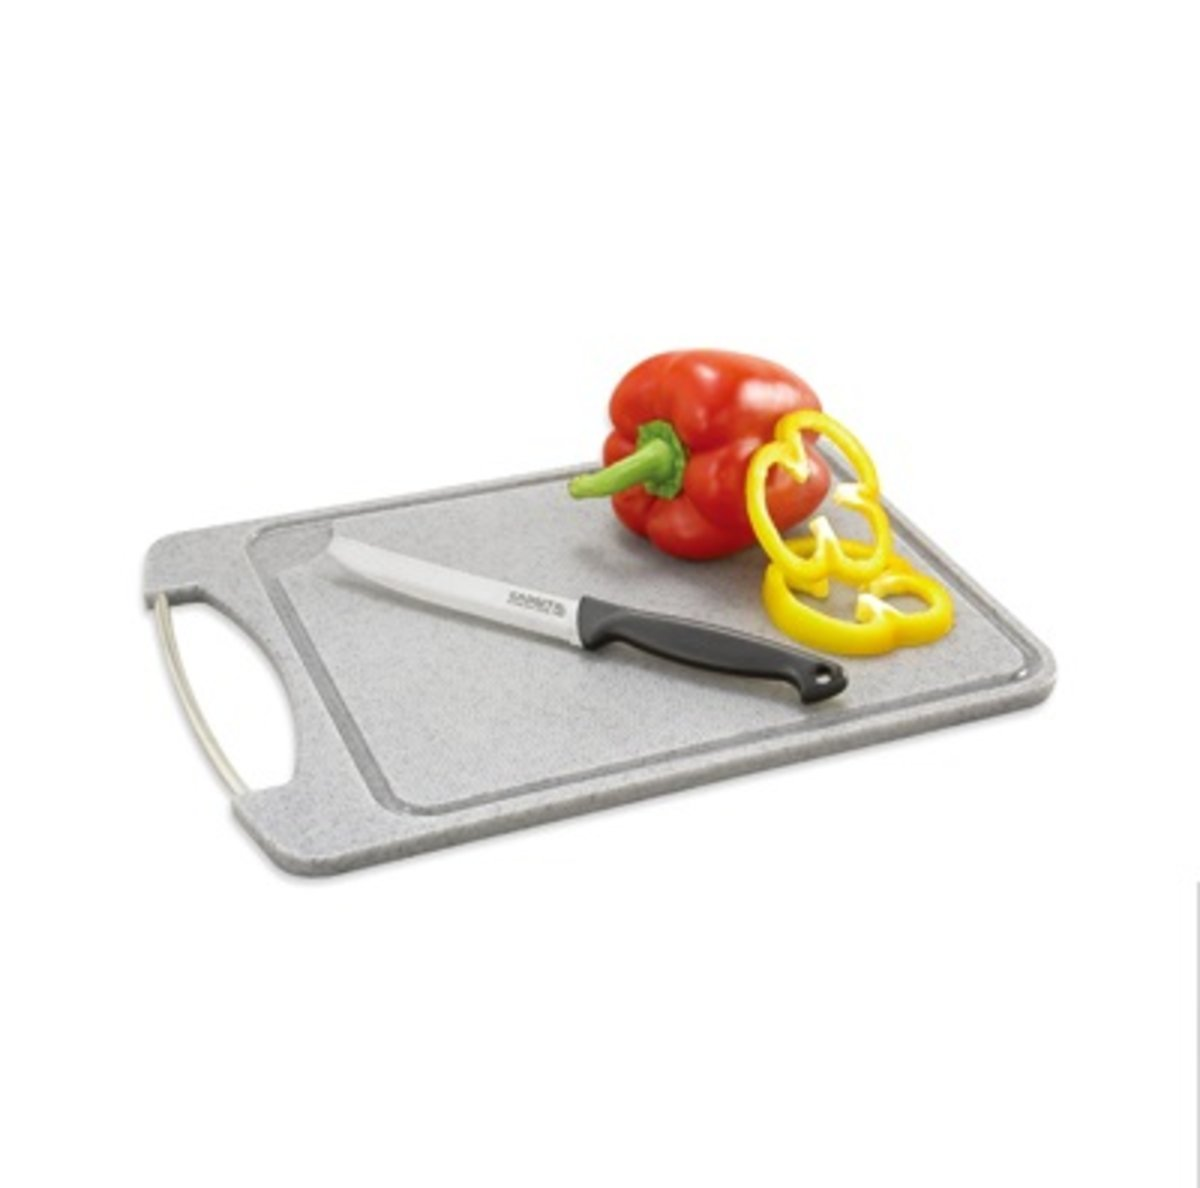 Cutting Board with Stainless Steel Handle 305 X 213 X 10 (mm)